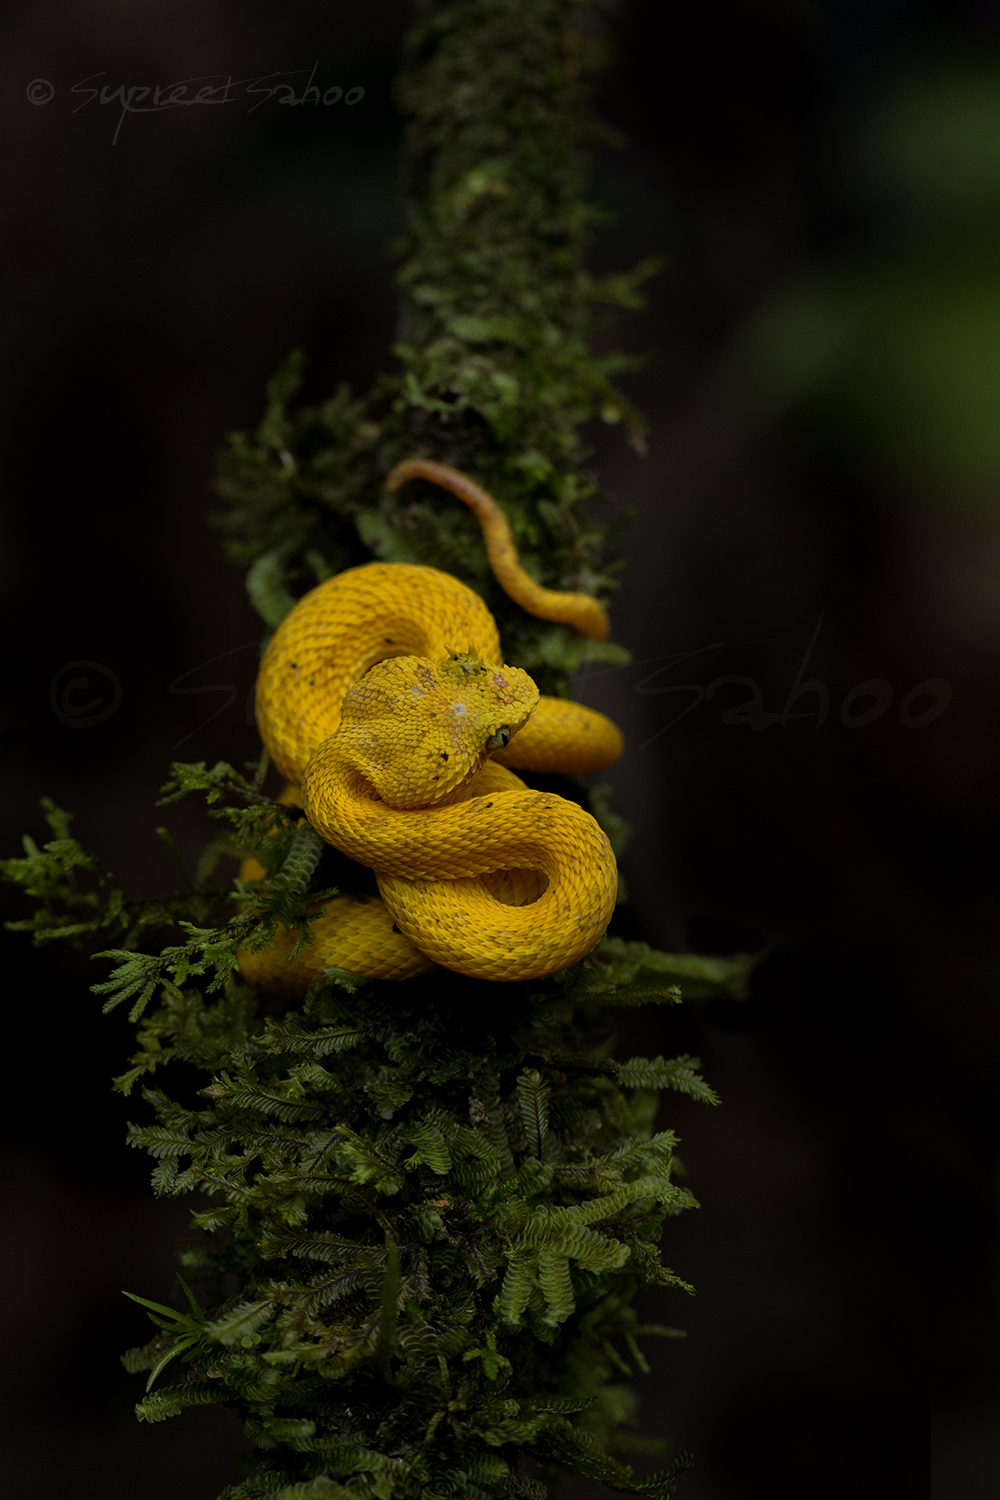 Eyelash Viper (Yellow morph)